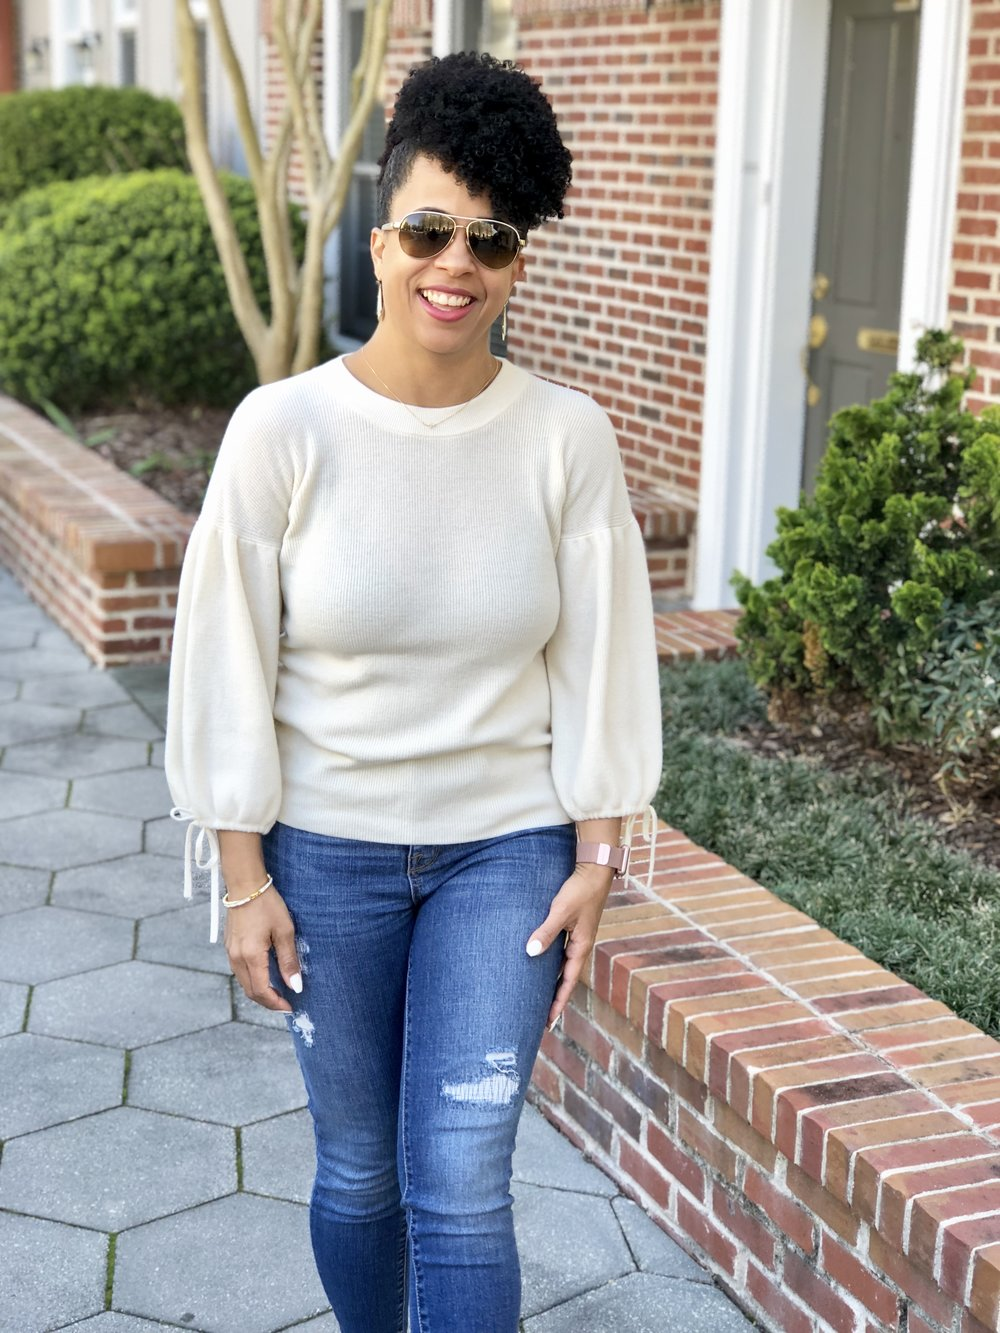 Jeans:  Target Jeggings On Clearance $14.98  Sweater:  On Sale $69.99 Booties:  Nine West/DSW On Sale $69.98  Sunnies:  Gucci